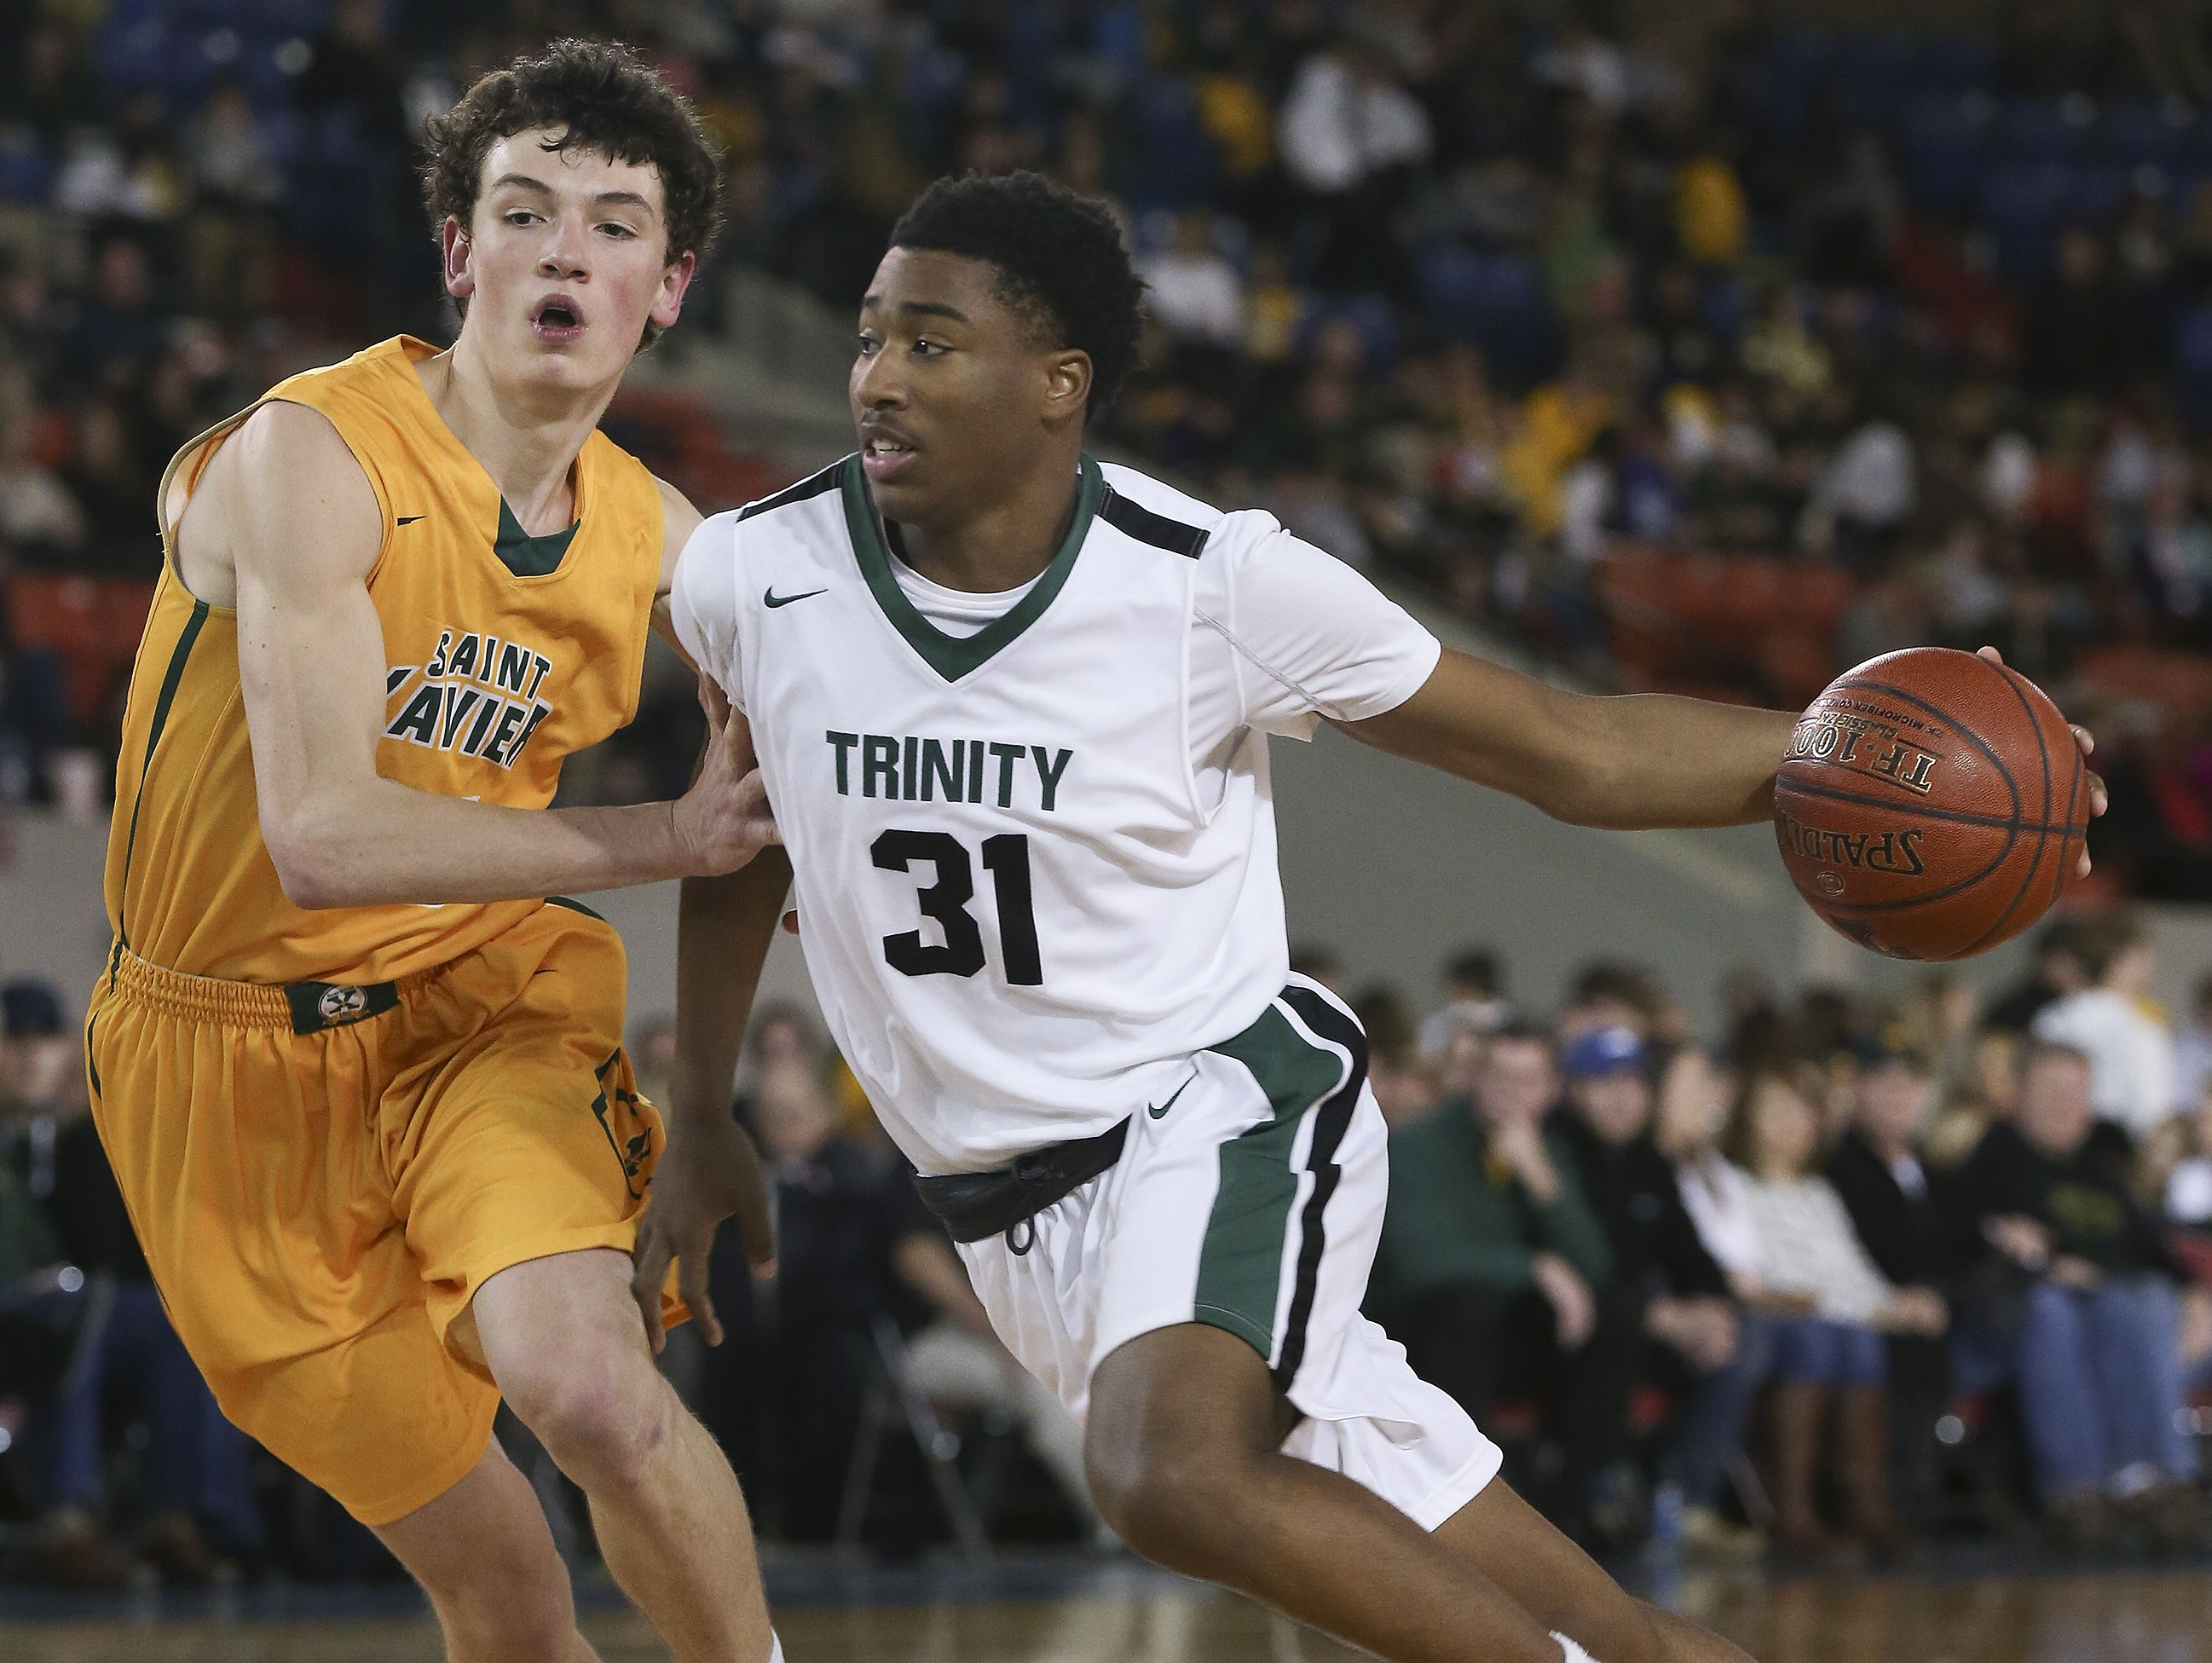 Trinity's Jay Scrubb (31) drives against St. X's Tyler Barnes (15) during their game at Broadbent Arena. Jan. 6, 2017